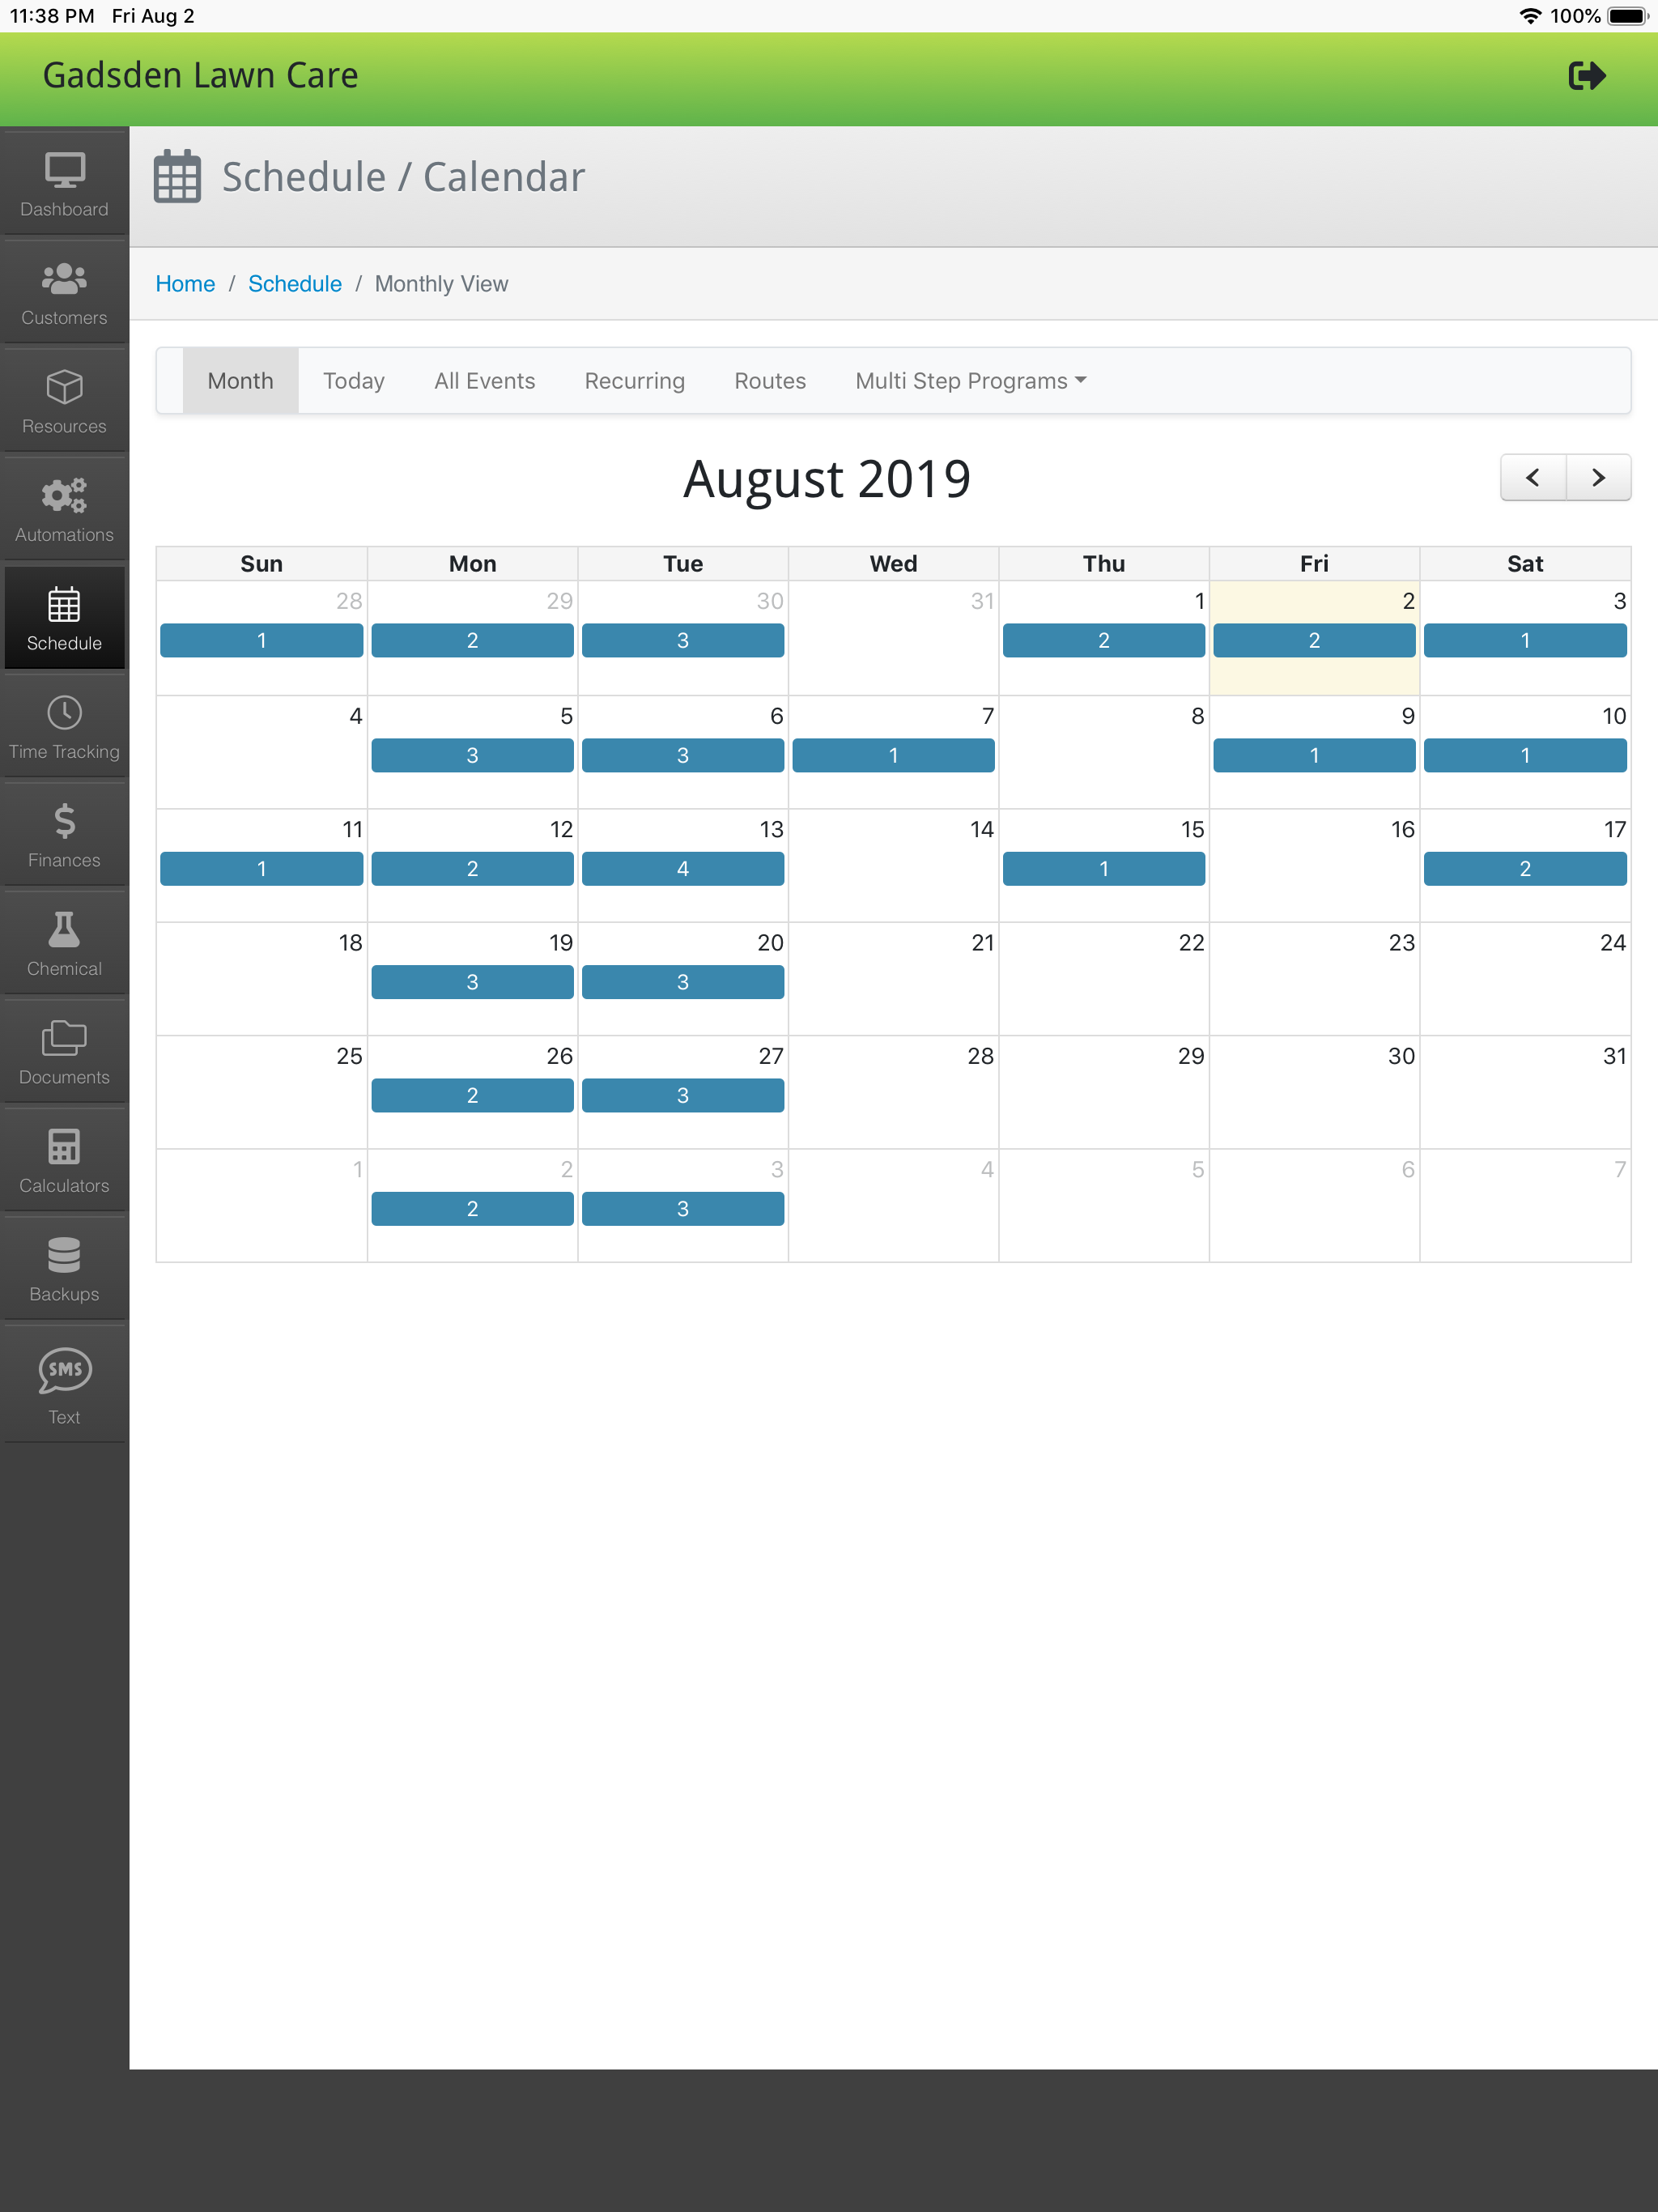 LawnPro schedule management